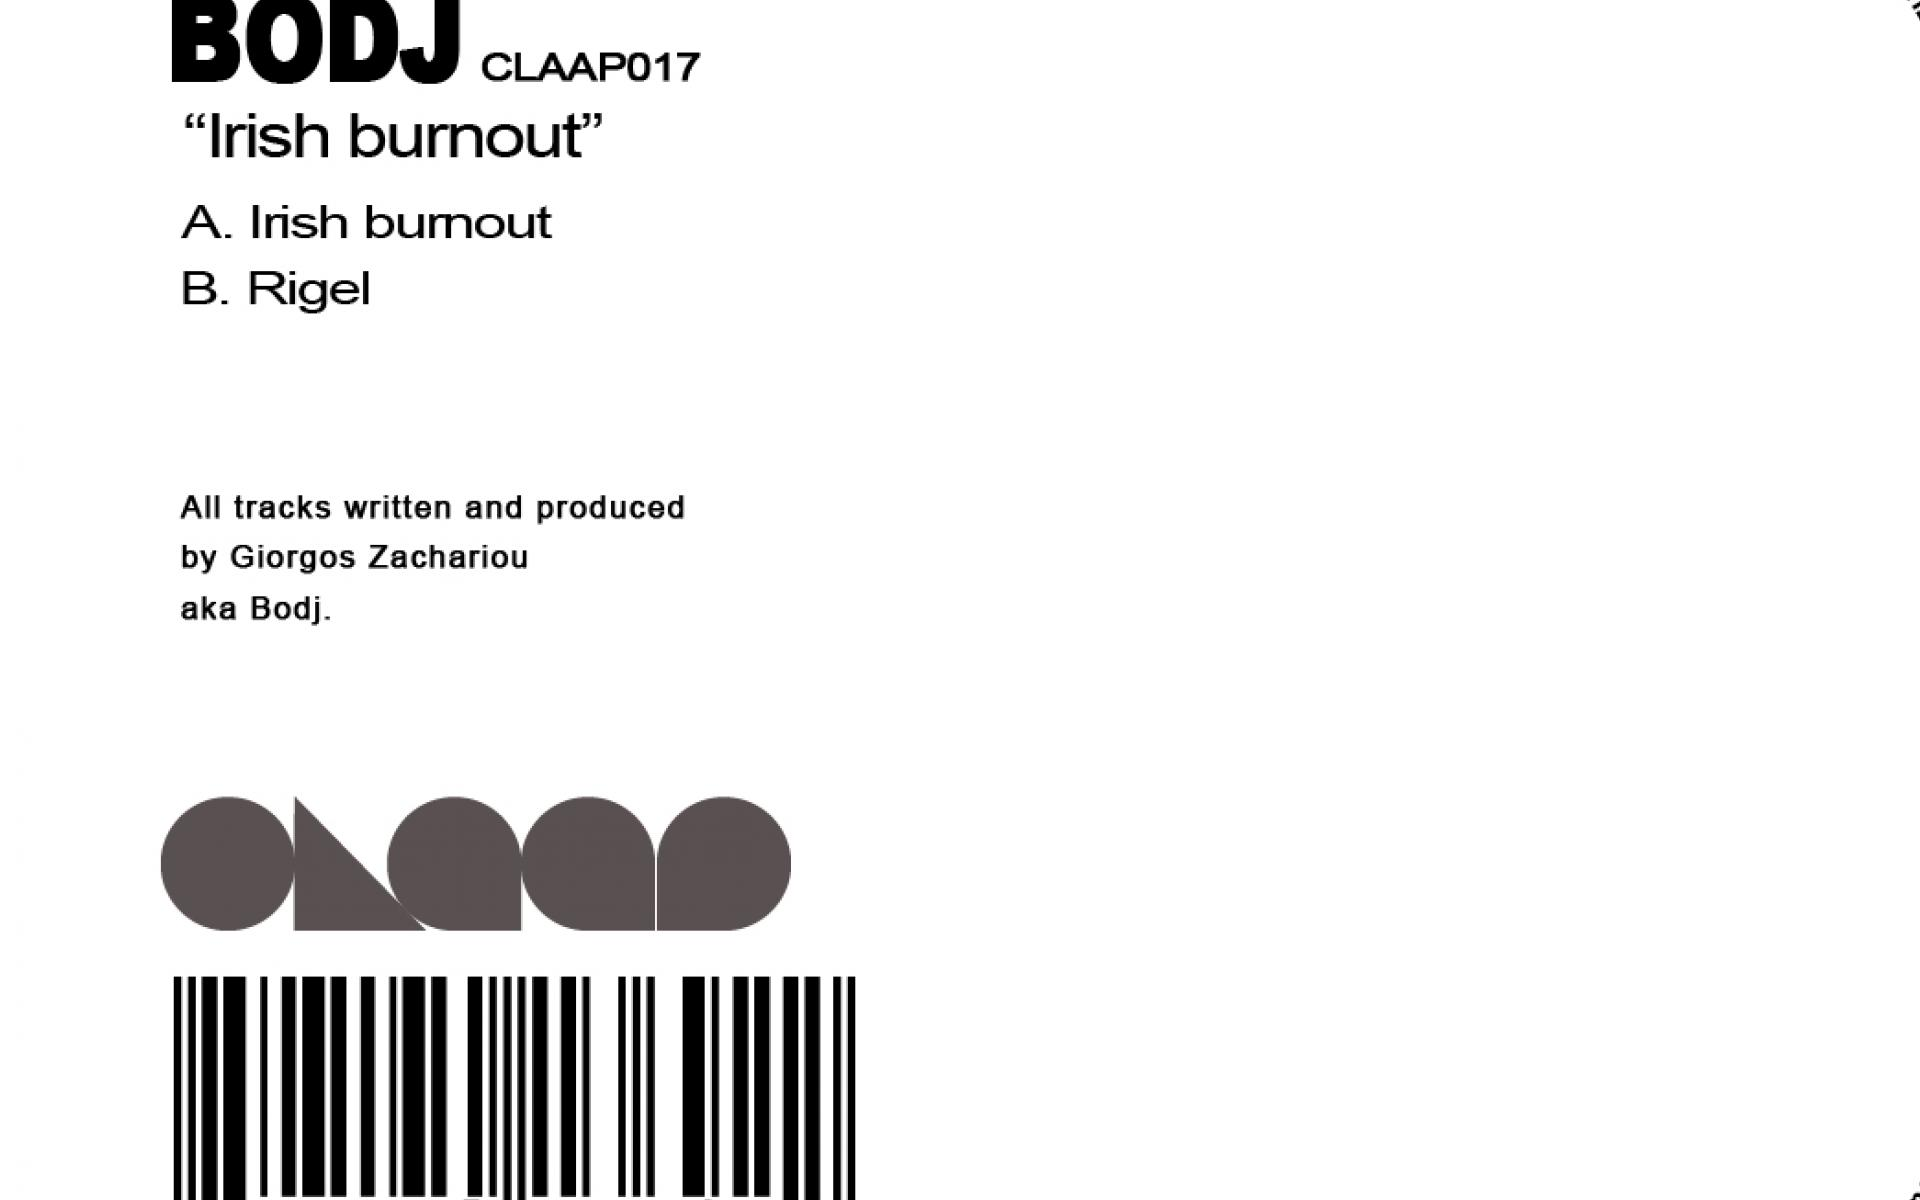 BODJ – IRISH BURNOUT